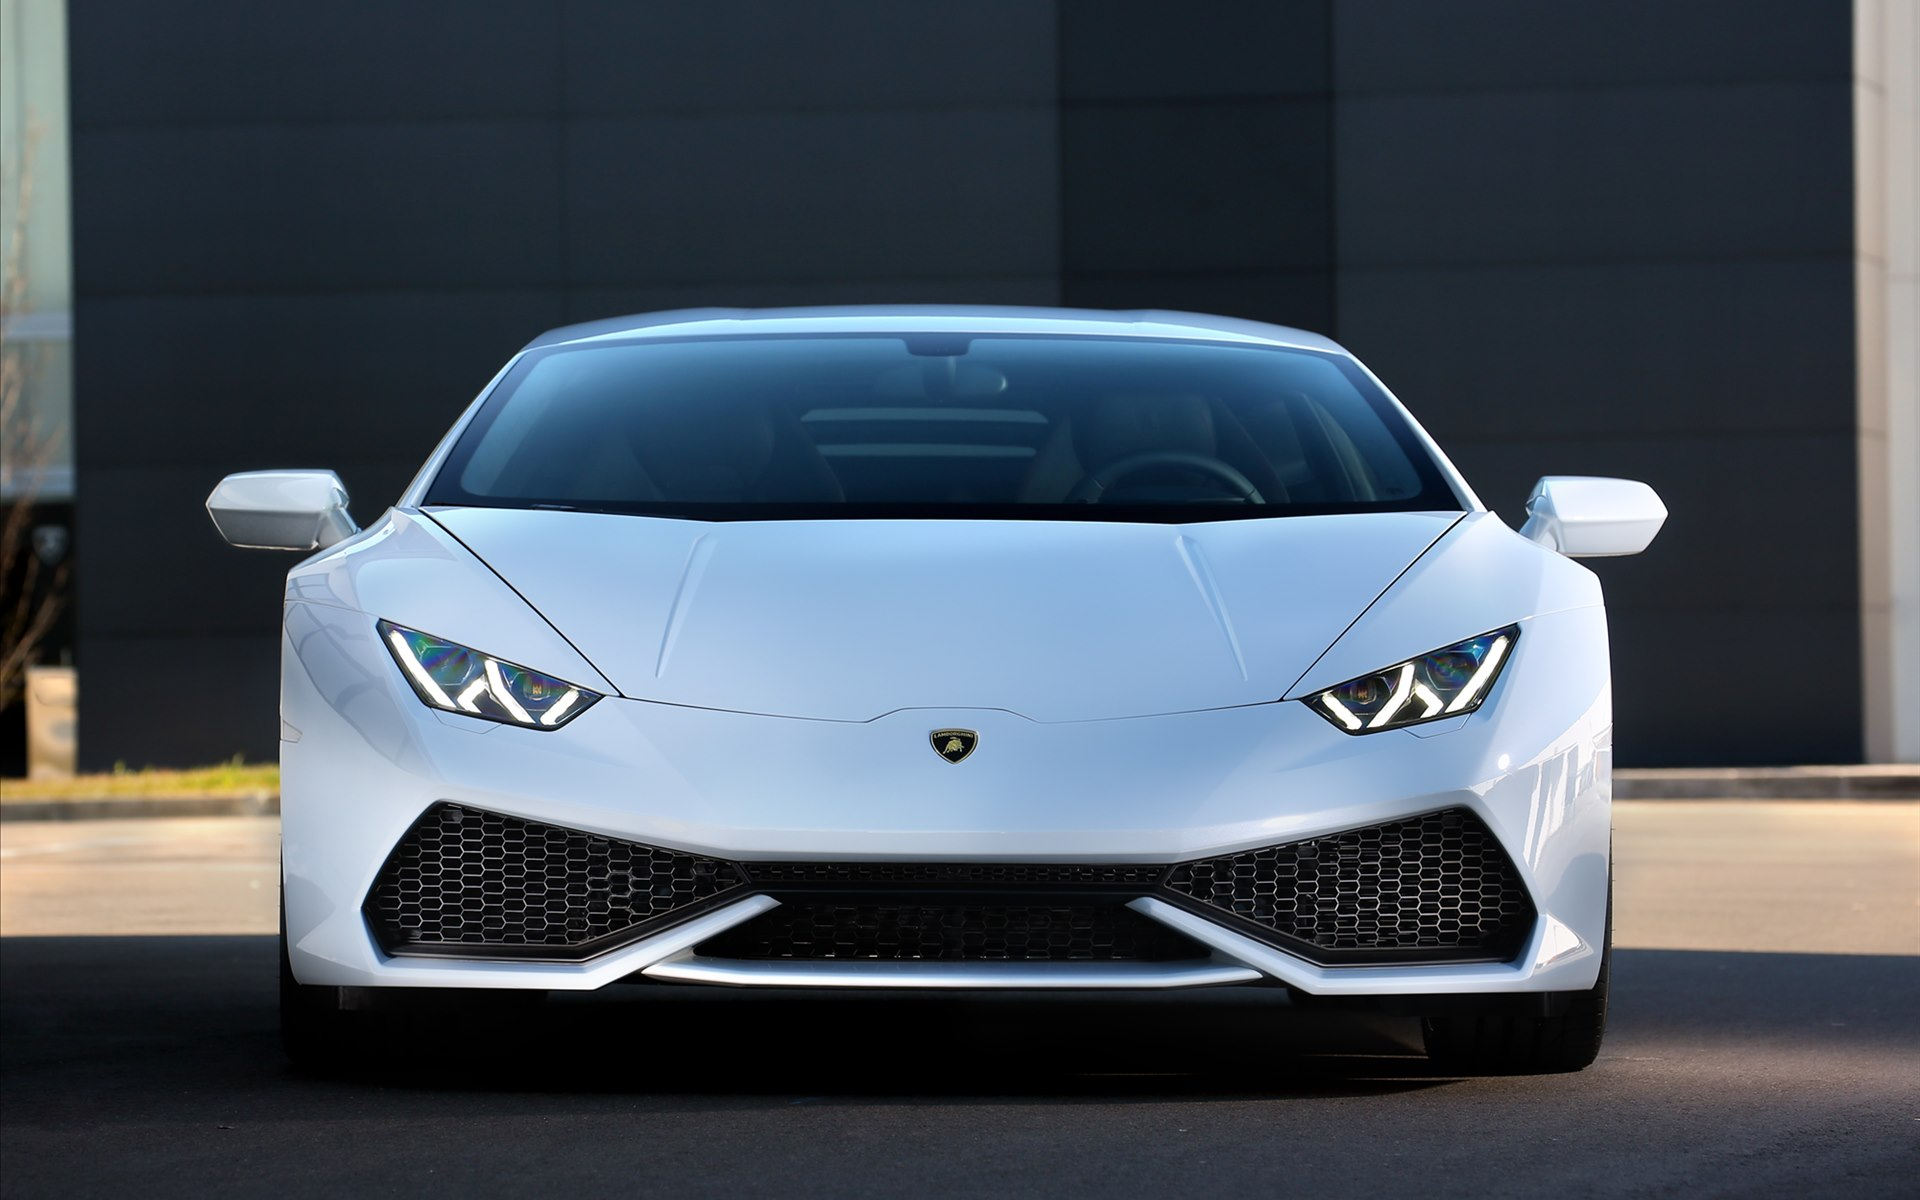 2015 Lamborghini Huracan Lp 610 4 Wallpaper Hd Car